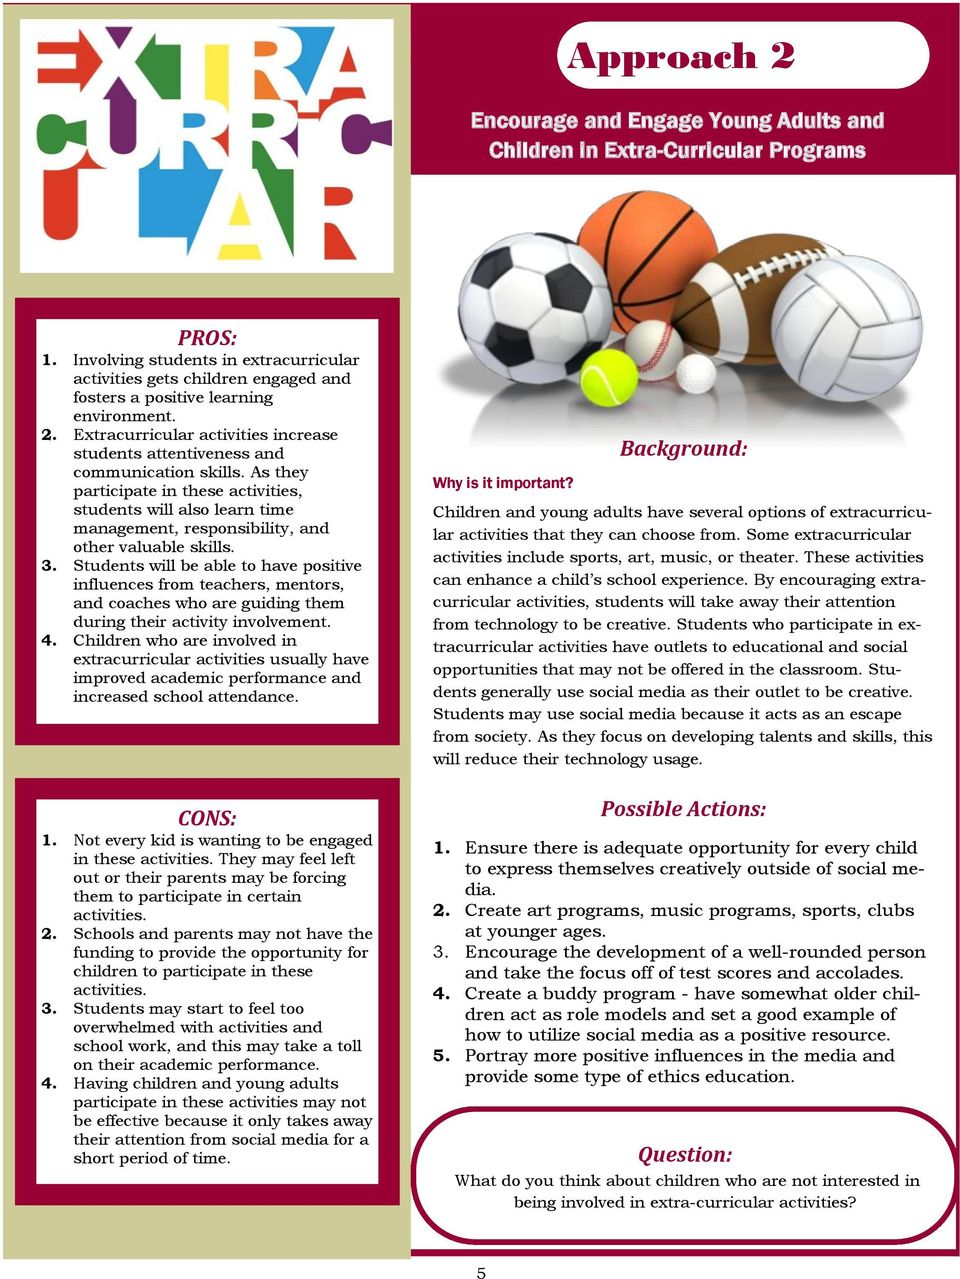 Extracurricular activities increase students attentiveness and communication skills.